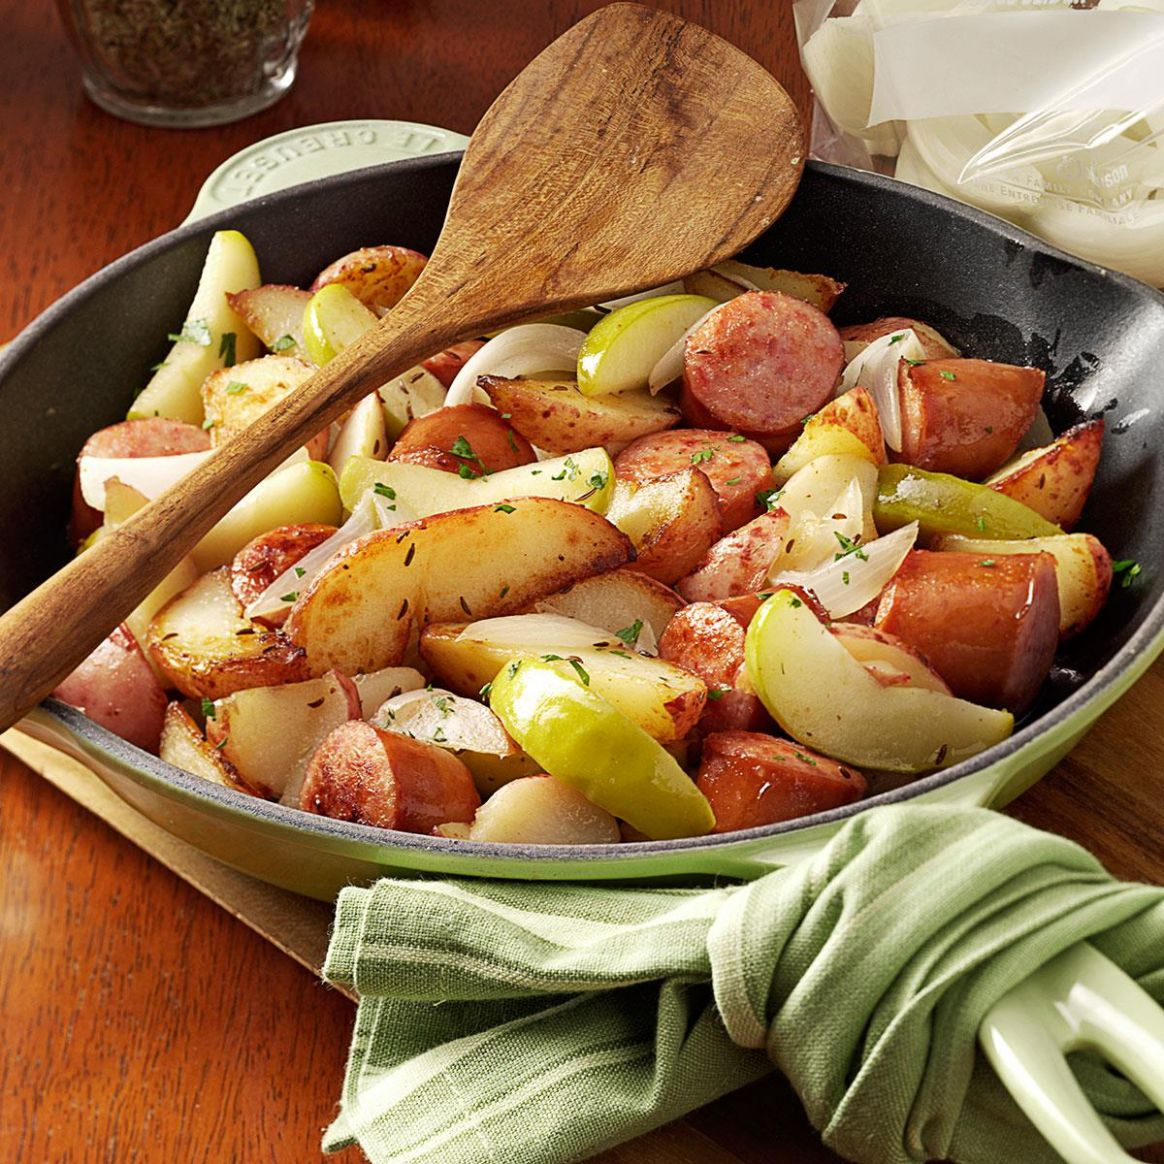 Sausage Skillet Dinner - Dinner Recipes Apple